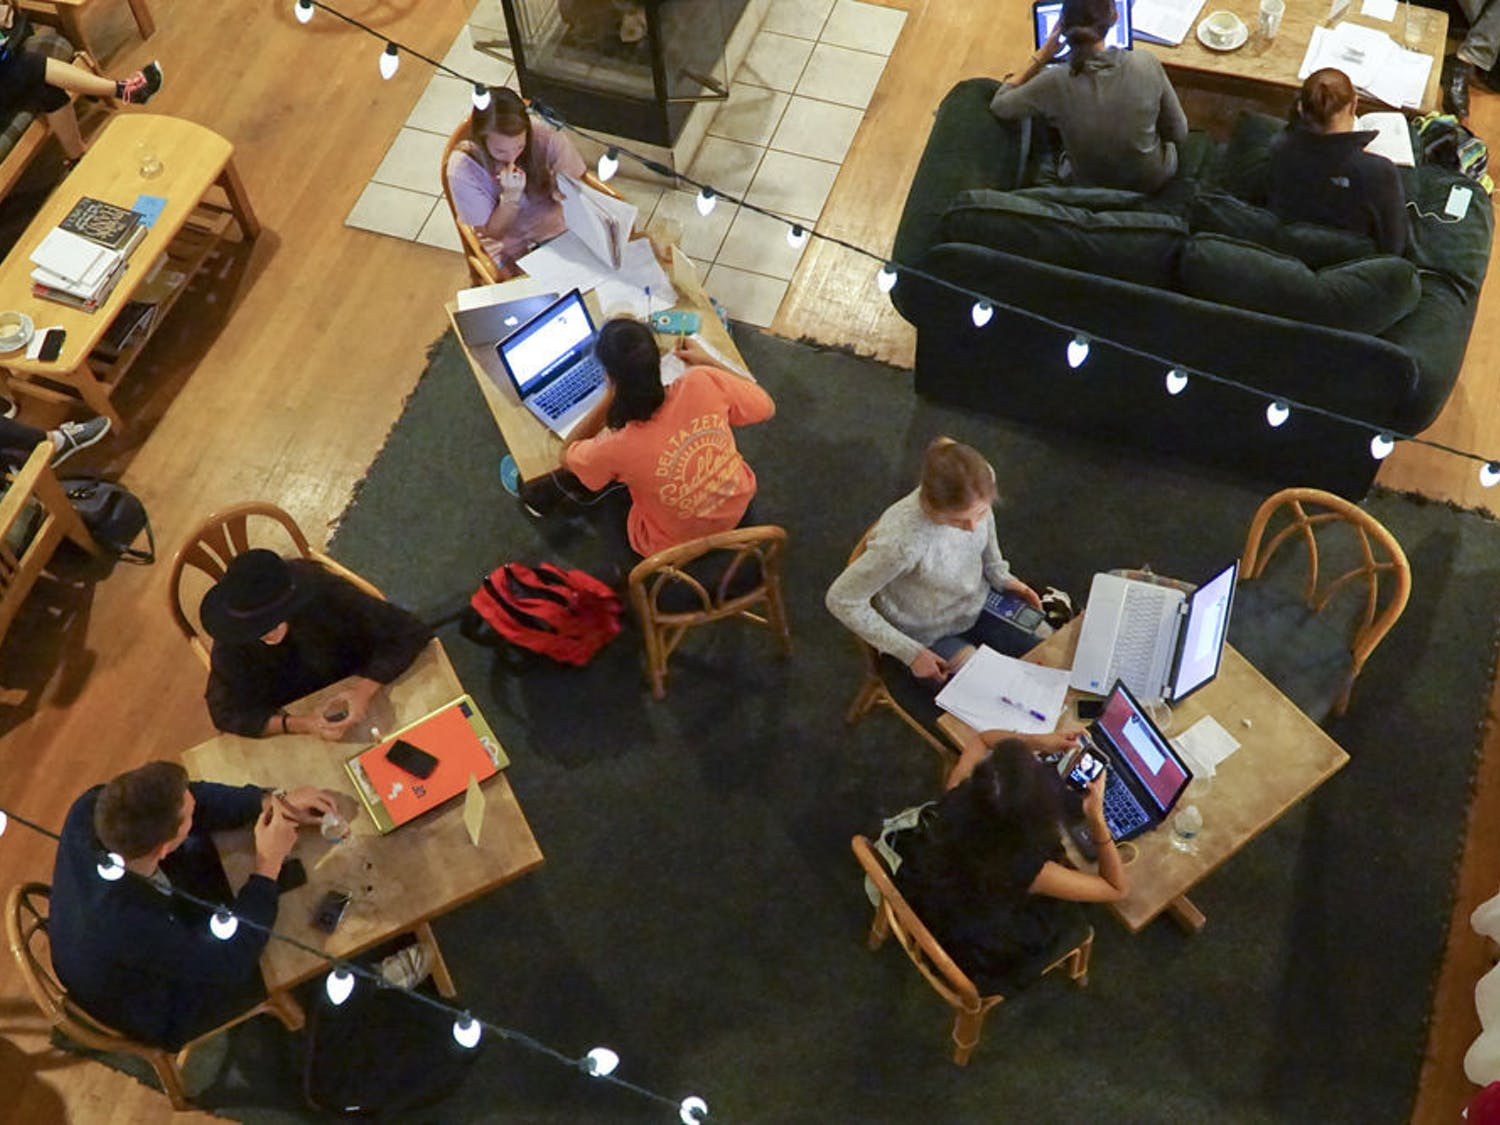 Students crowd Pascal's Coffeehouse on Dec. 8, 2015. Juan Alcala, the study center's manager, said students always bring more business during finals week.